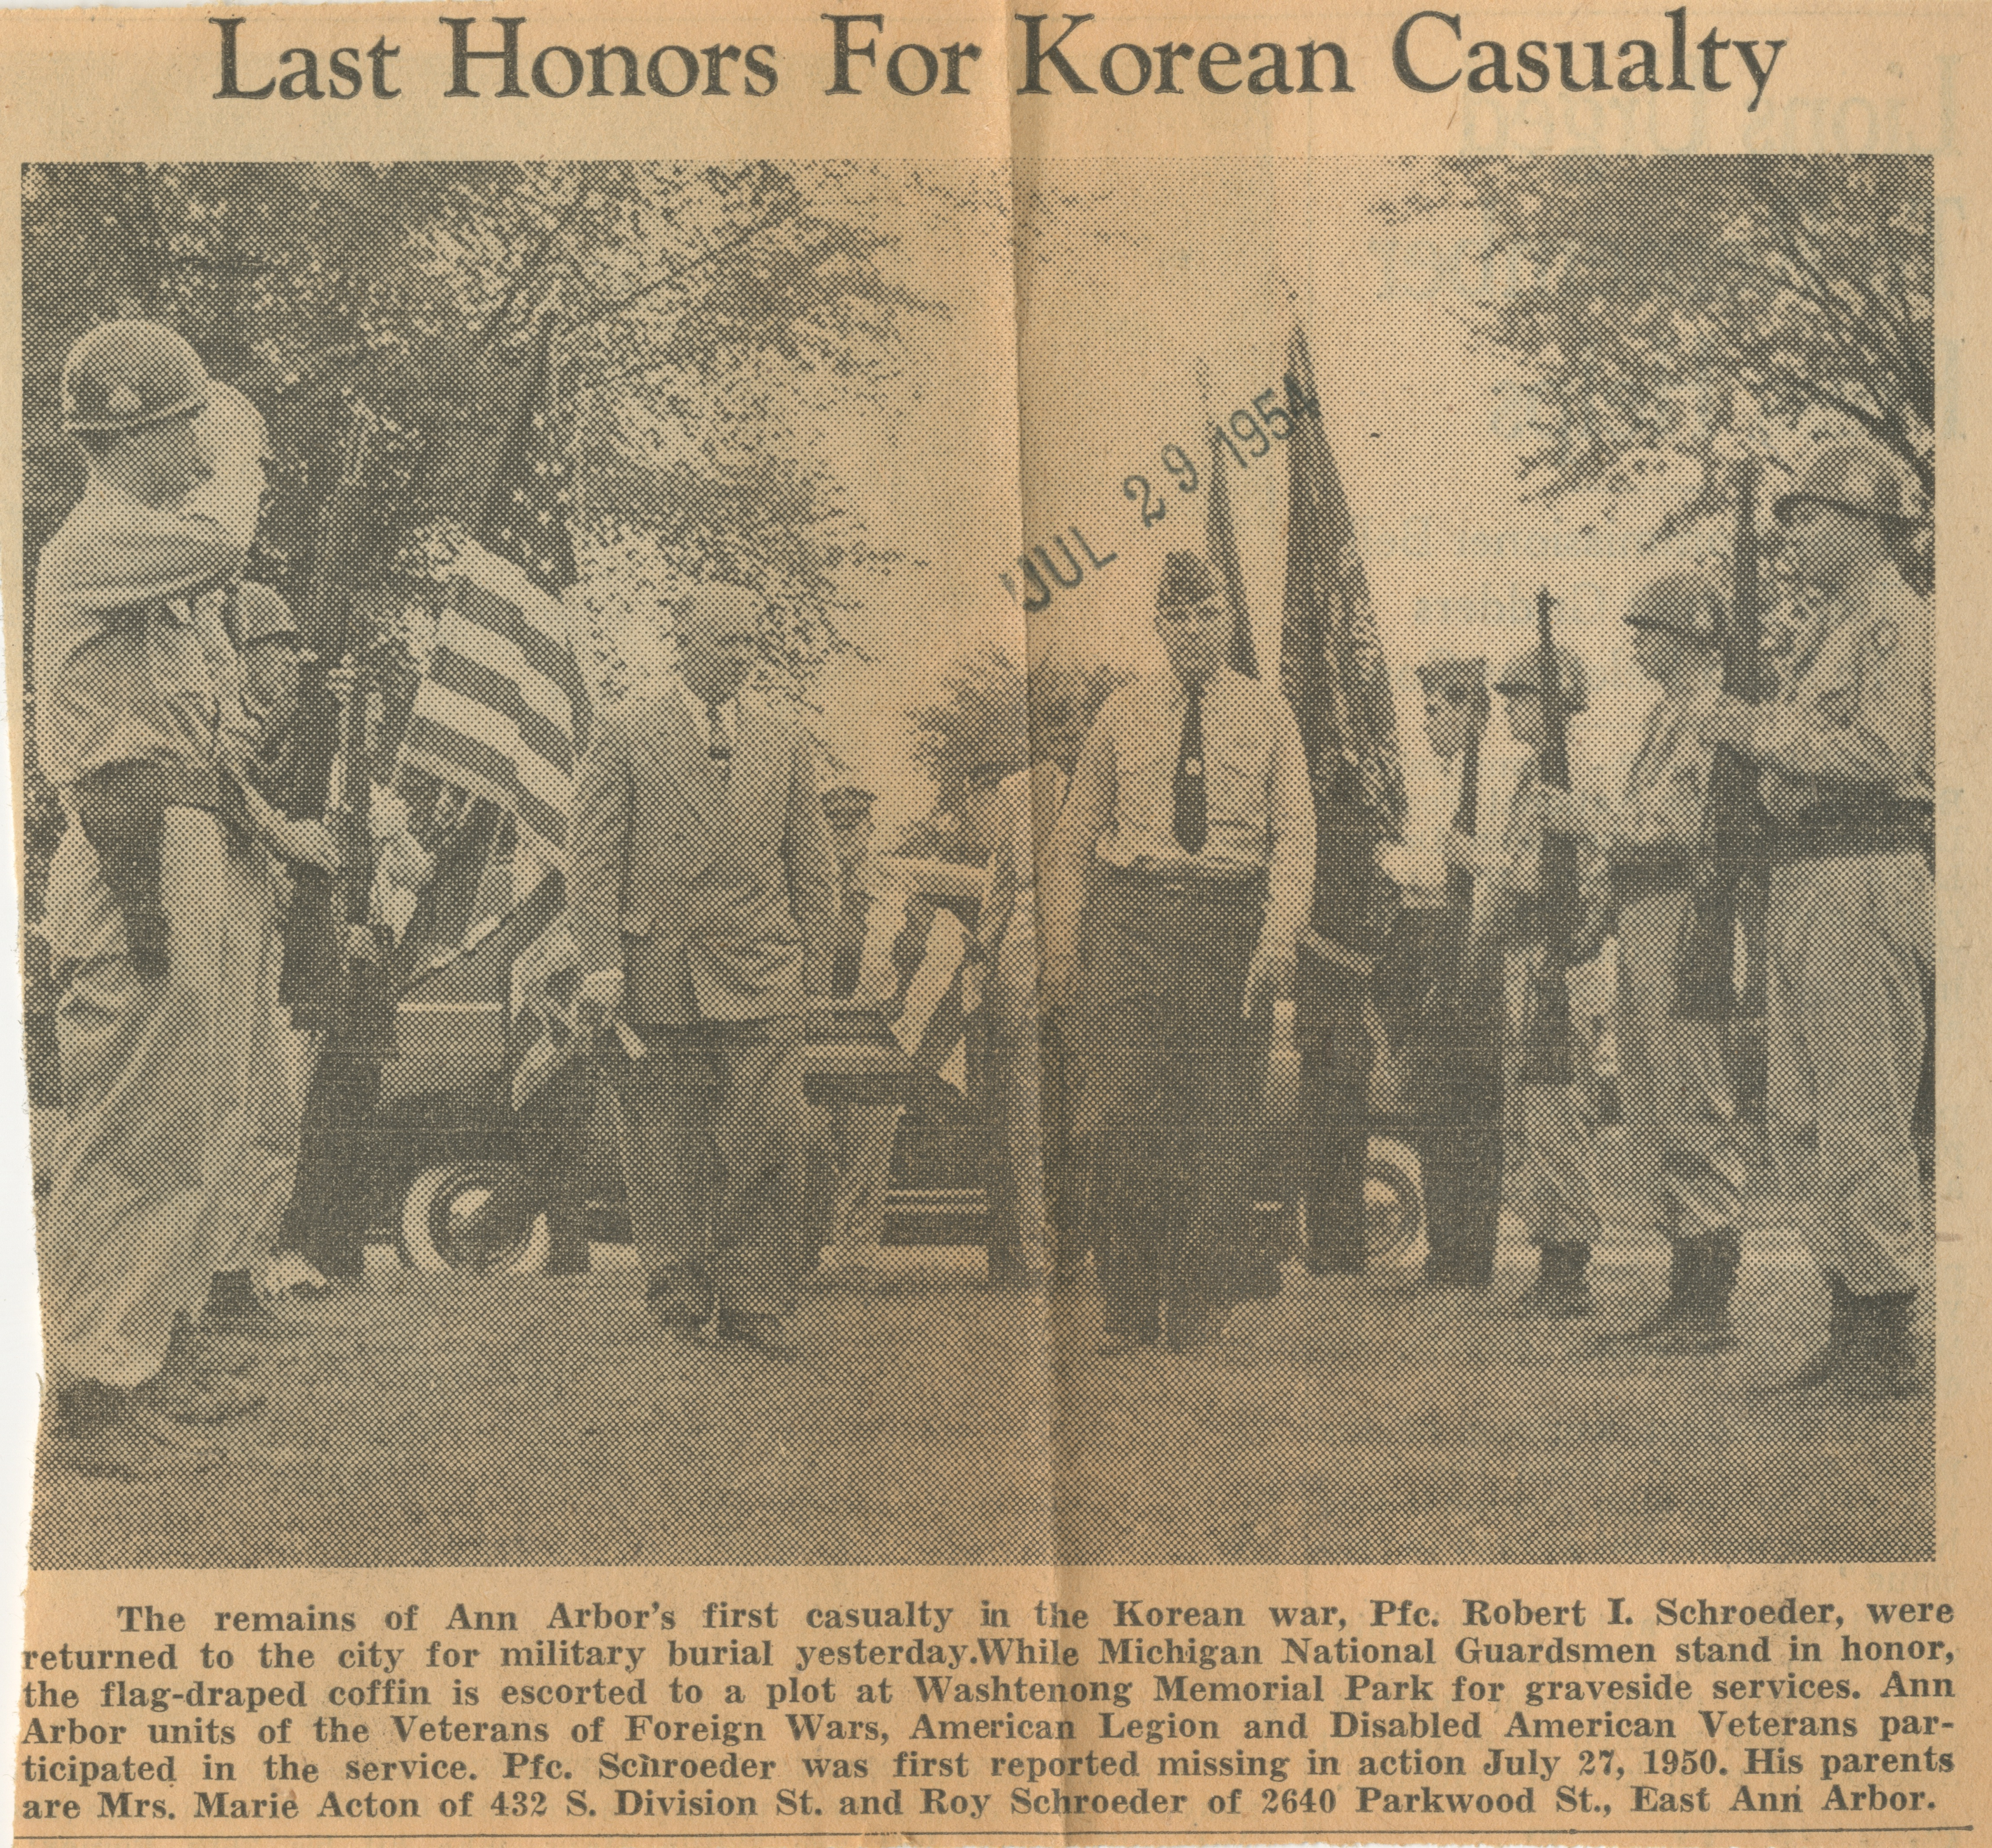 Last Honors For Korean Casualty image